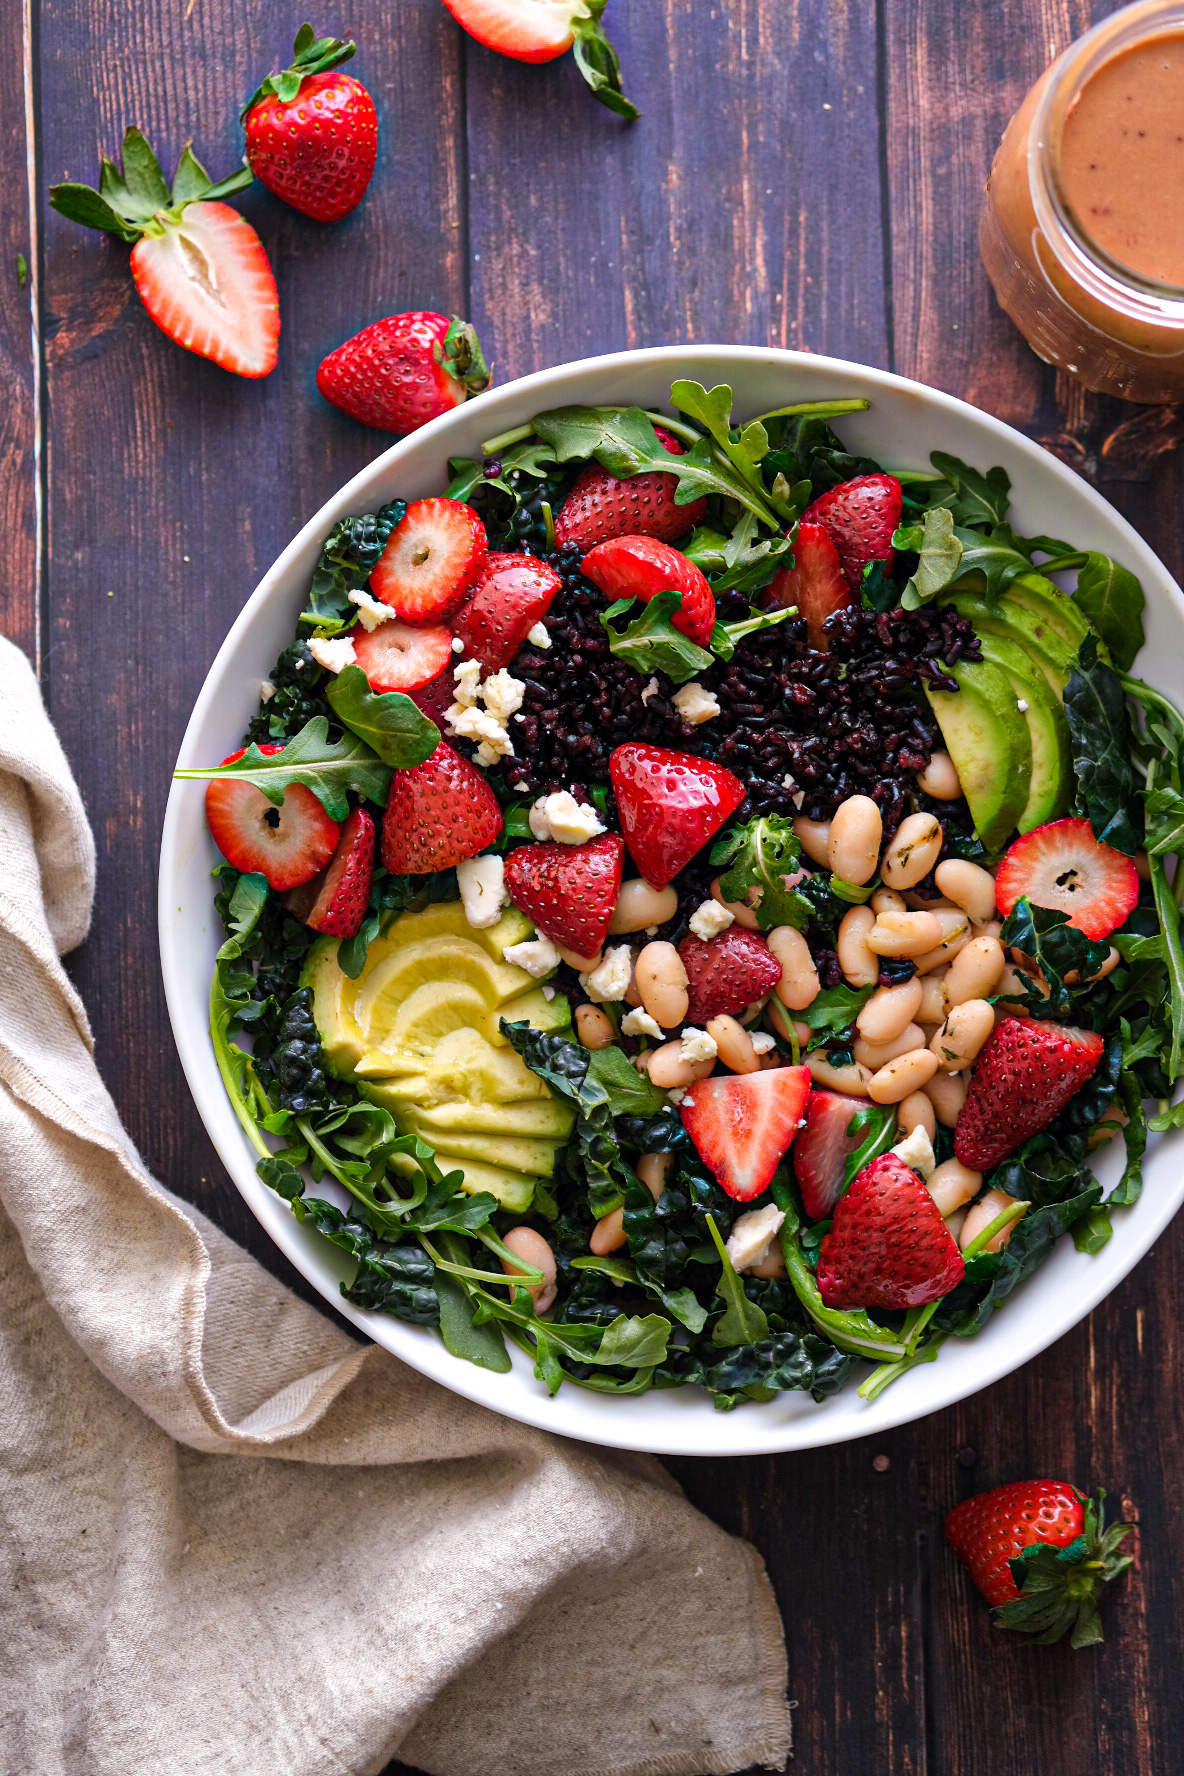 Roasted Strawberry Salad with Black Rice and Avocado